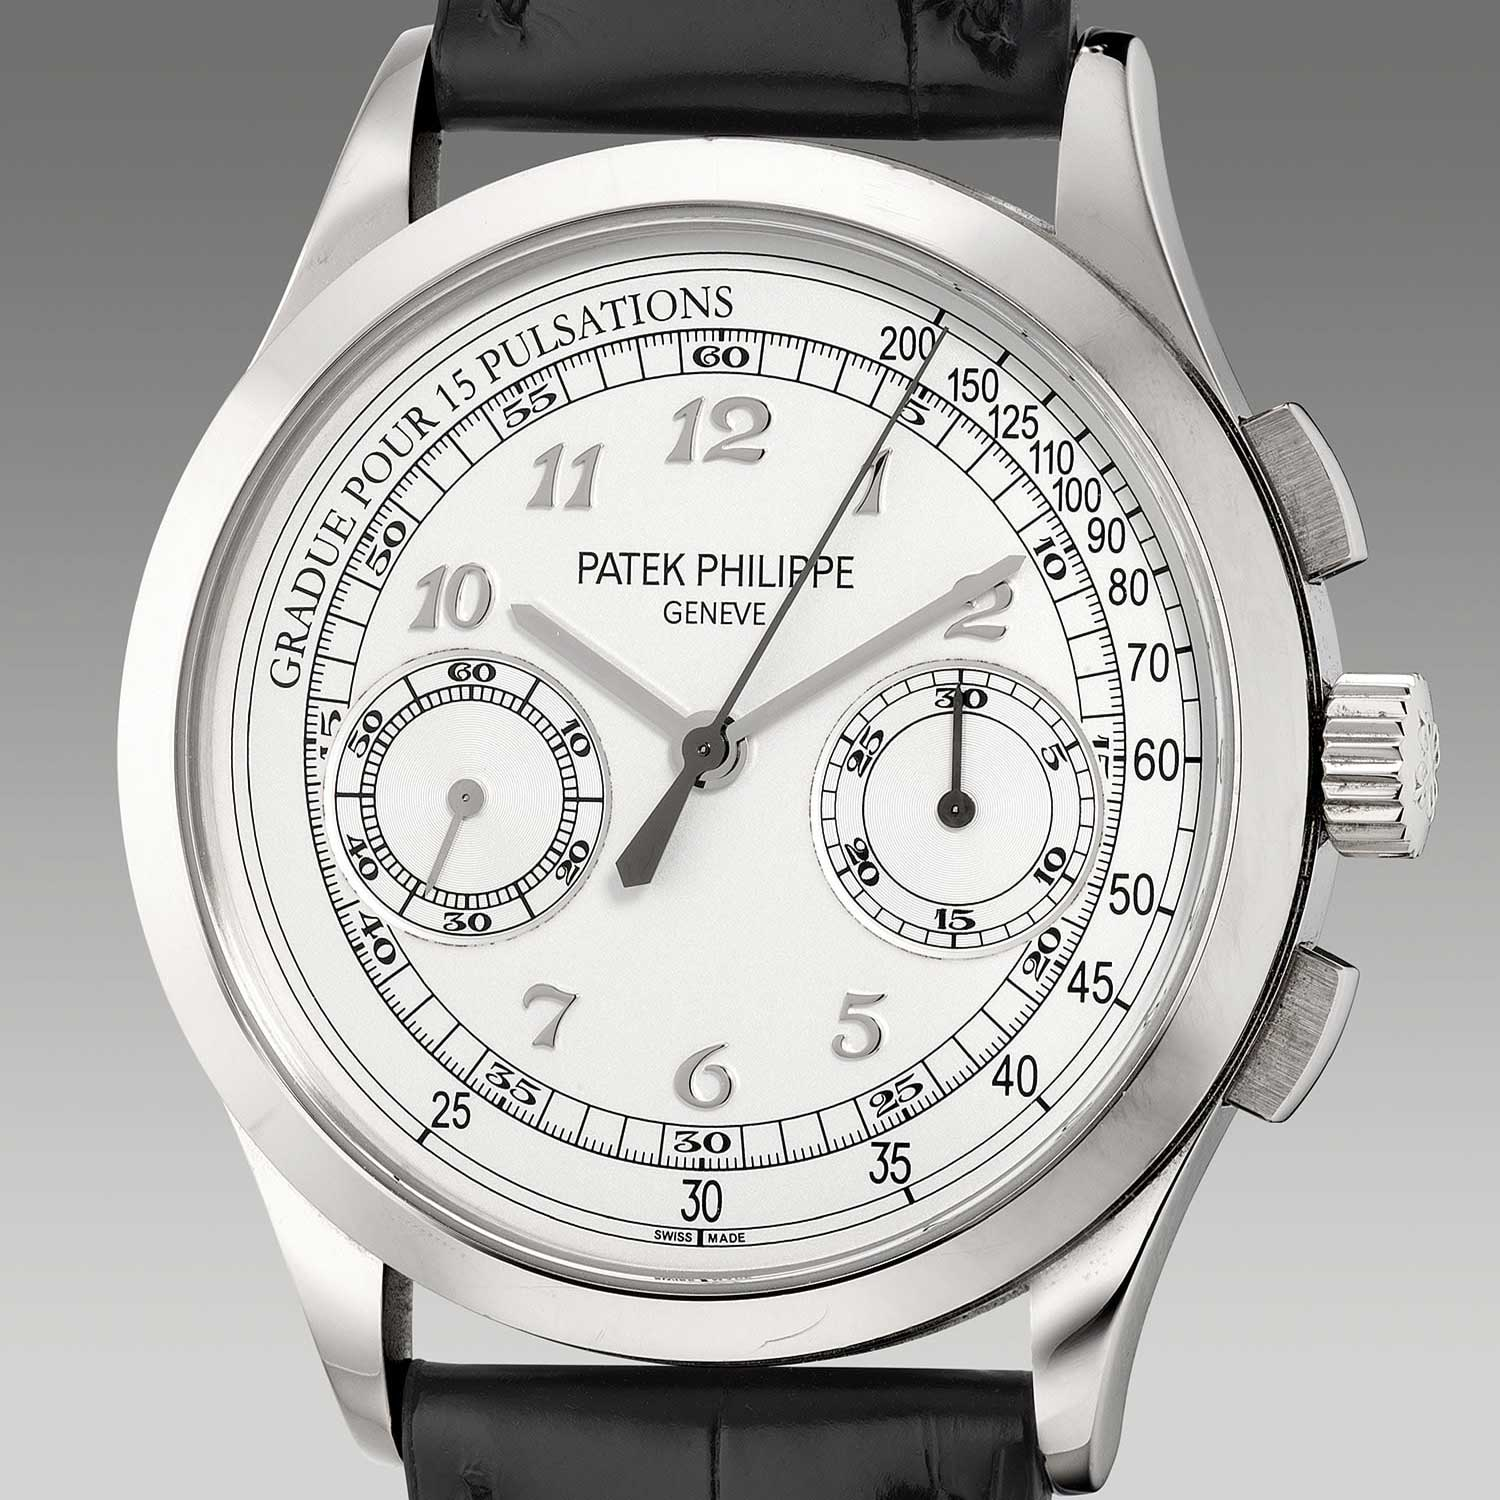 The Ref. 5170G-001 was launched in 2013; this second version of the watch featured a white gold case with applied Breguet hour markers and a pulsation scale (Image: Phillips.com)